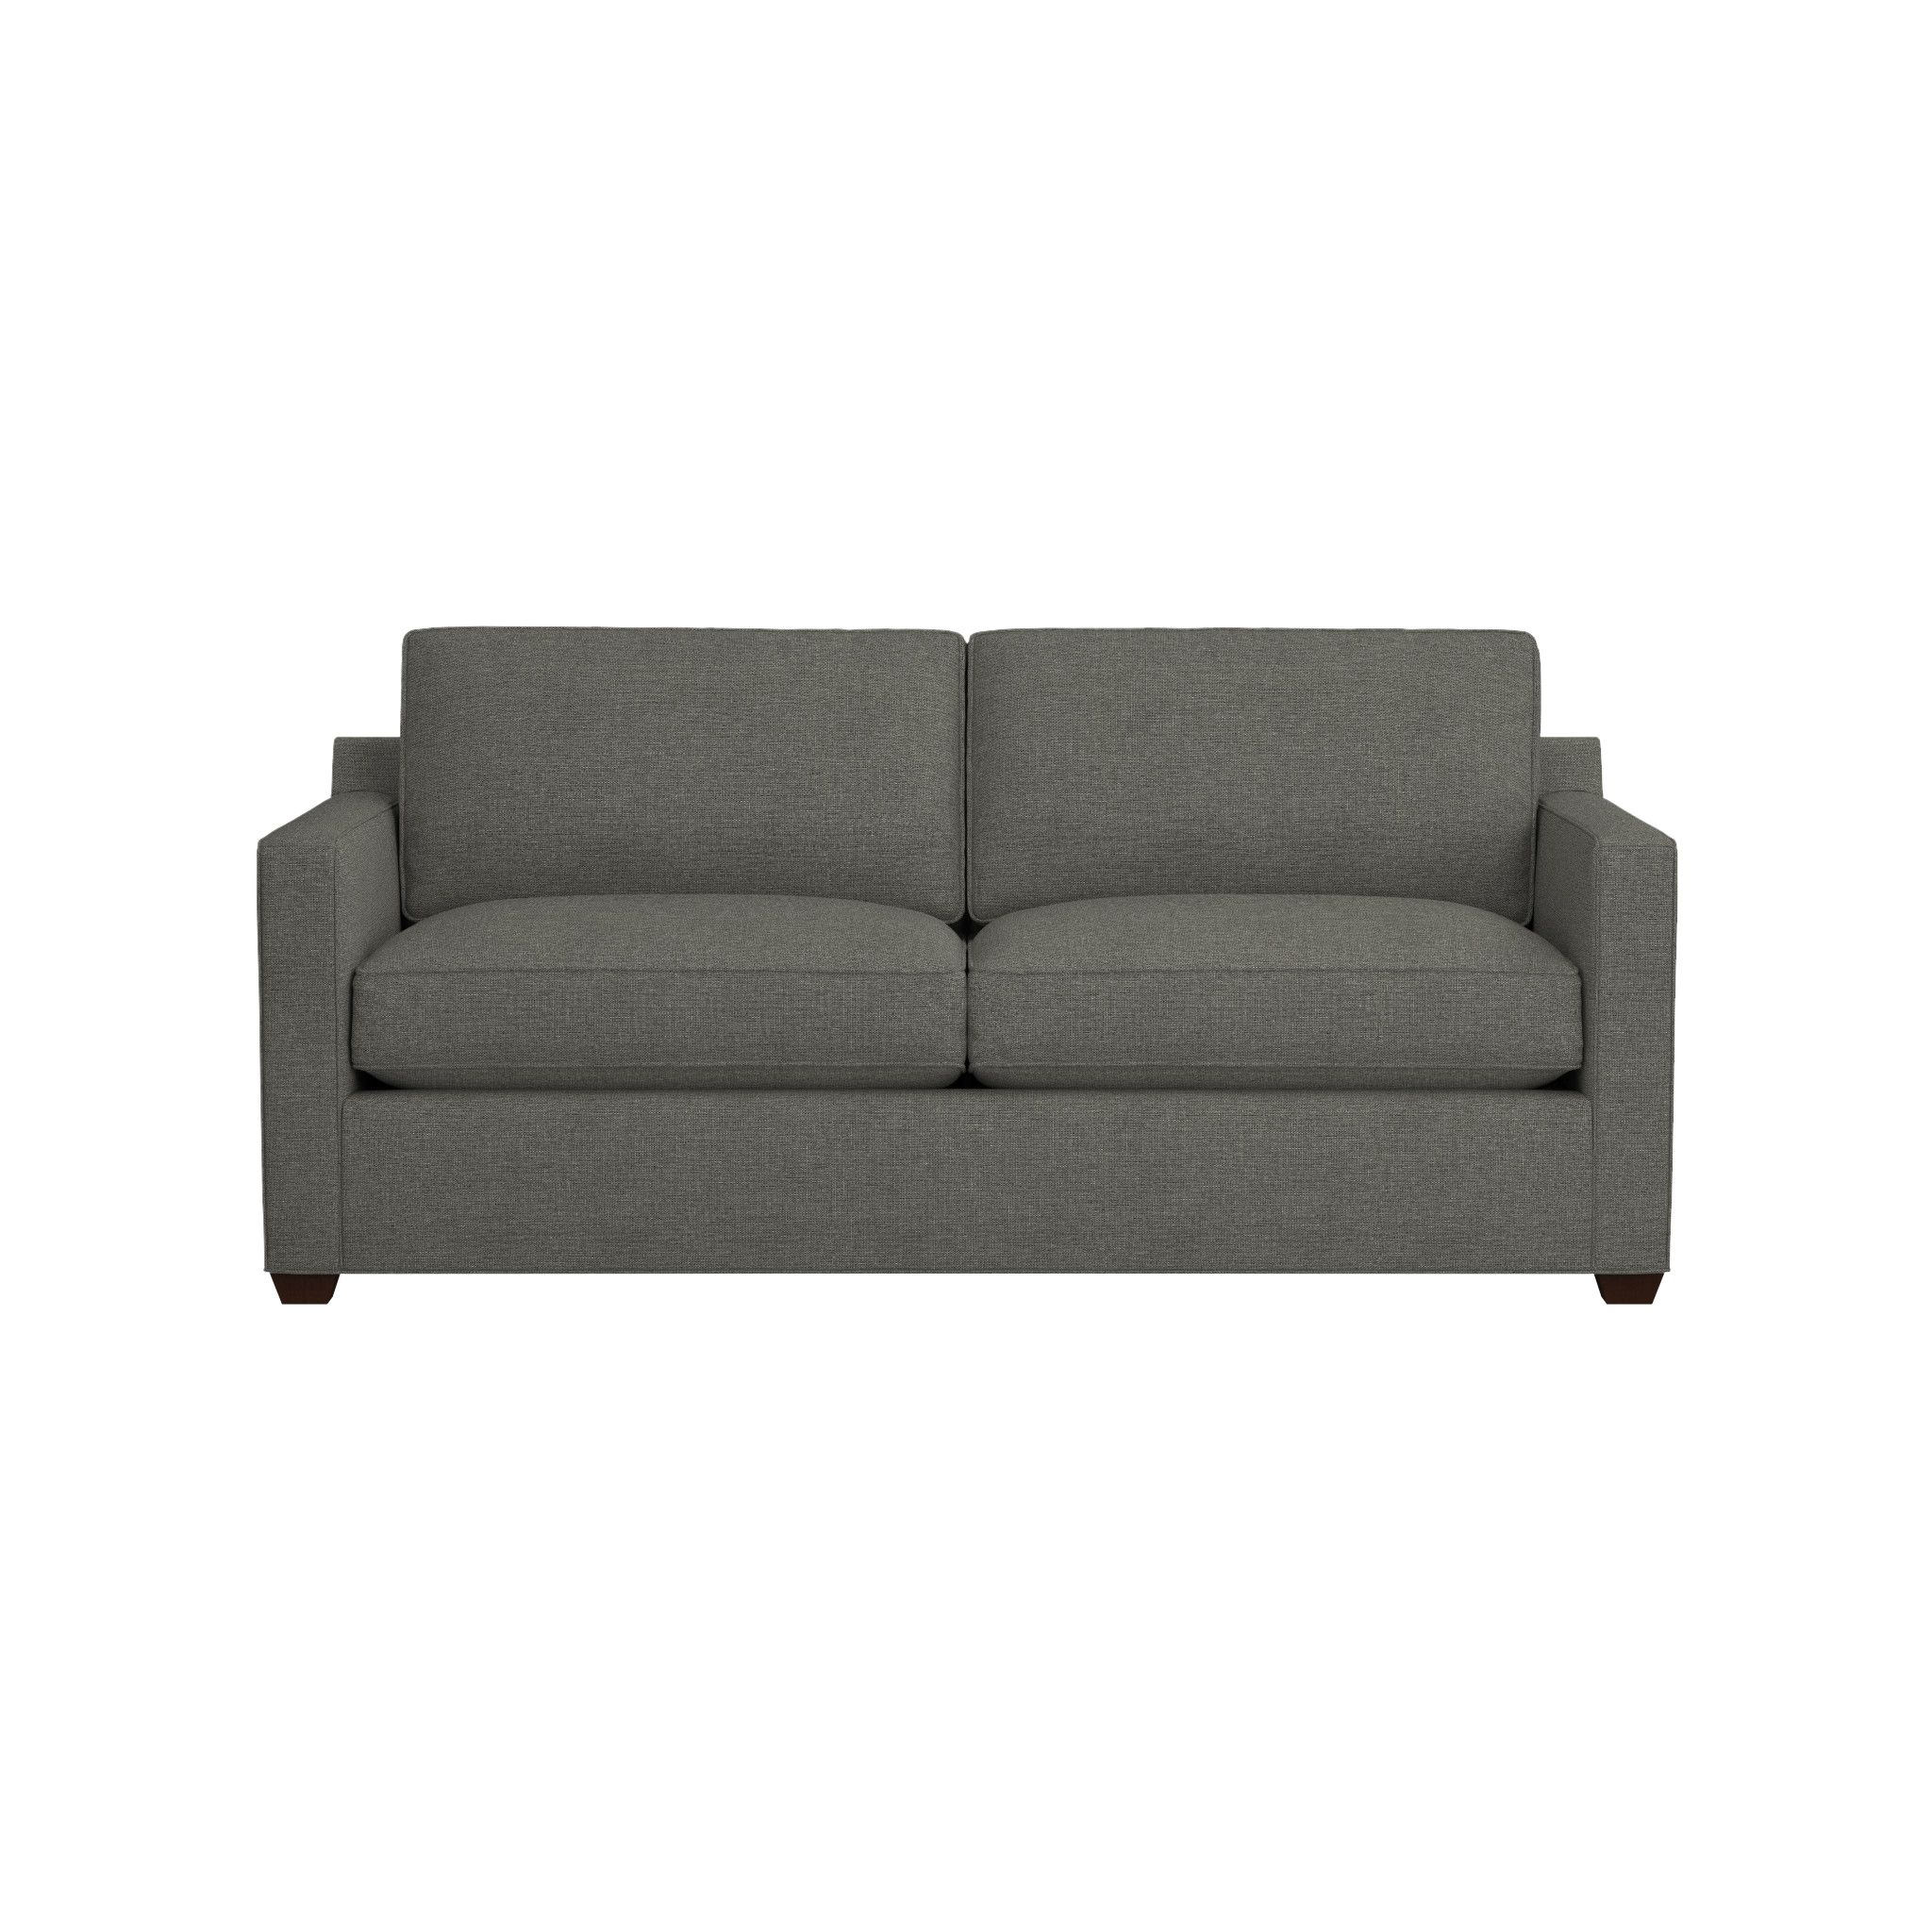 Crate and Barrel Couch | Crate and Barrel Reviews | Crate and Barrel Lounge Sectional Review